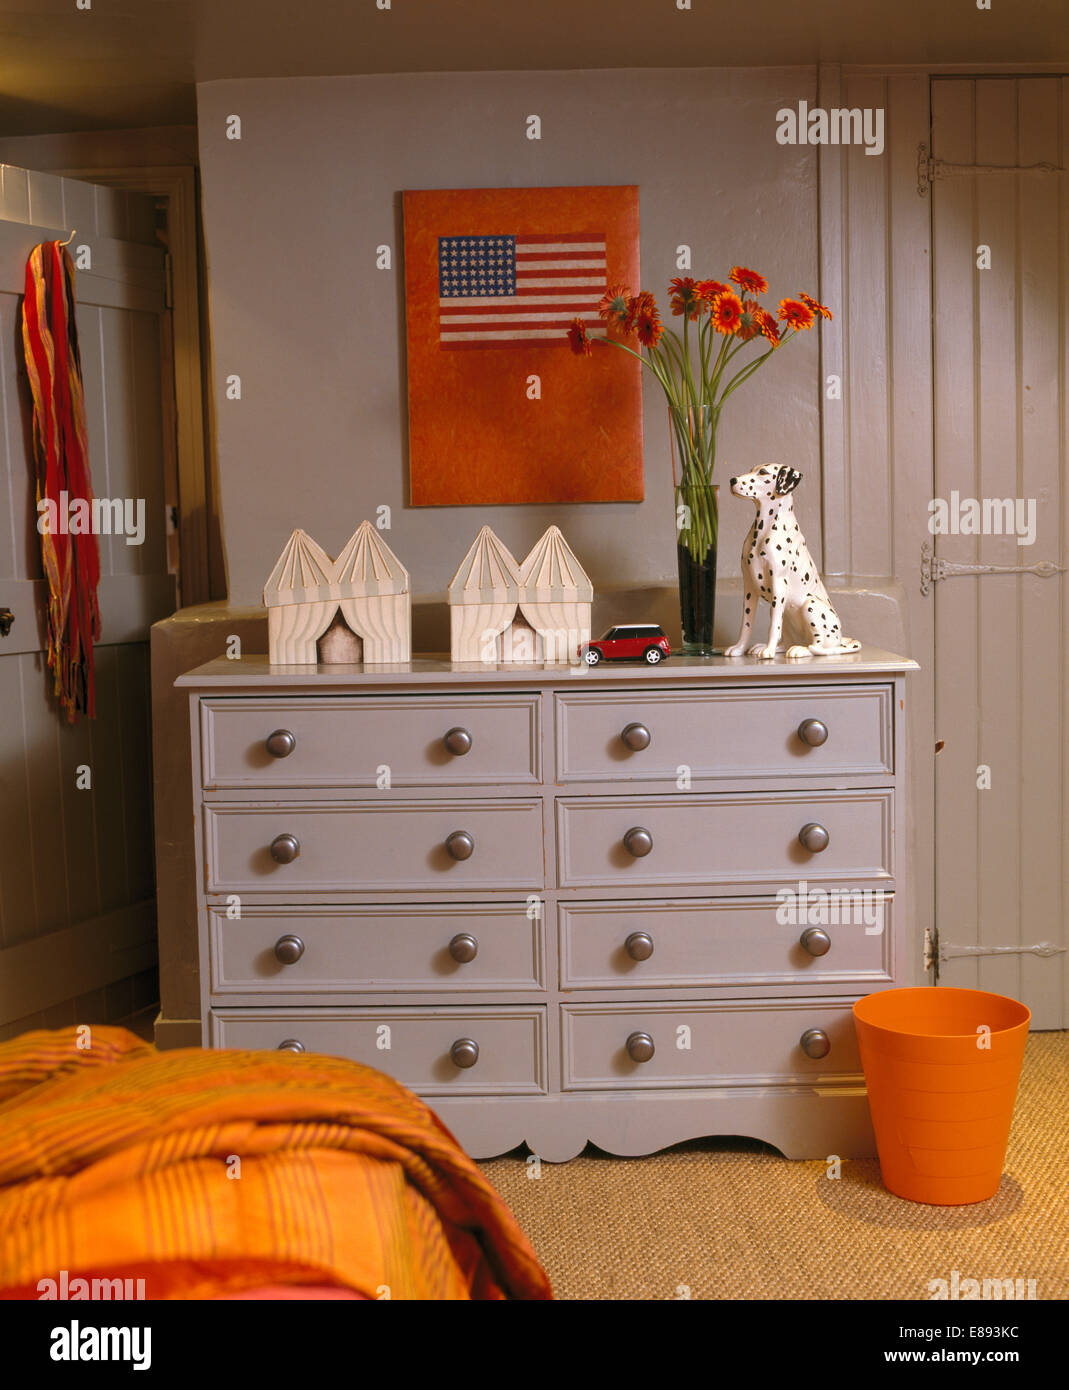 Orange And Grey Bedroom Picture On Wall Above Pale Grey Painted Chest Of Drawers In Pale